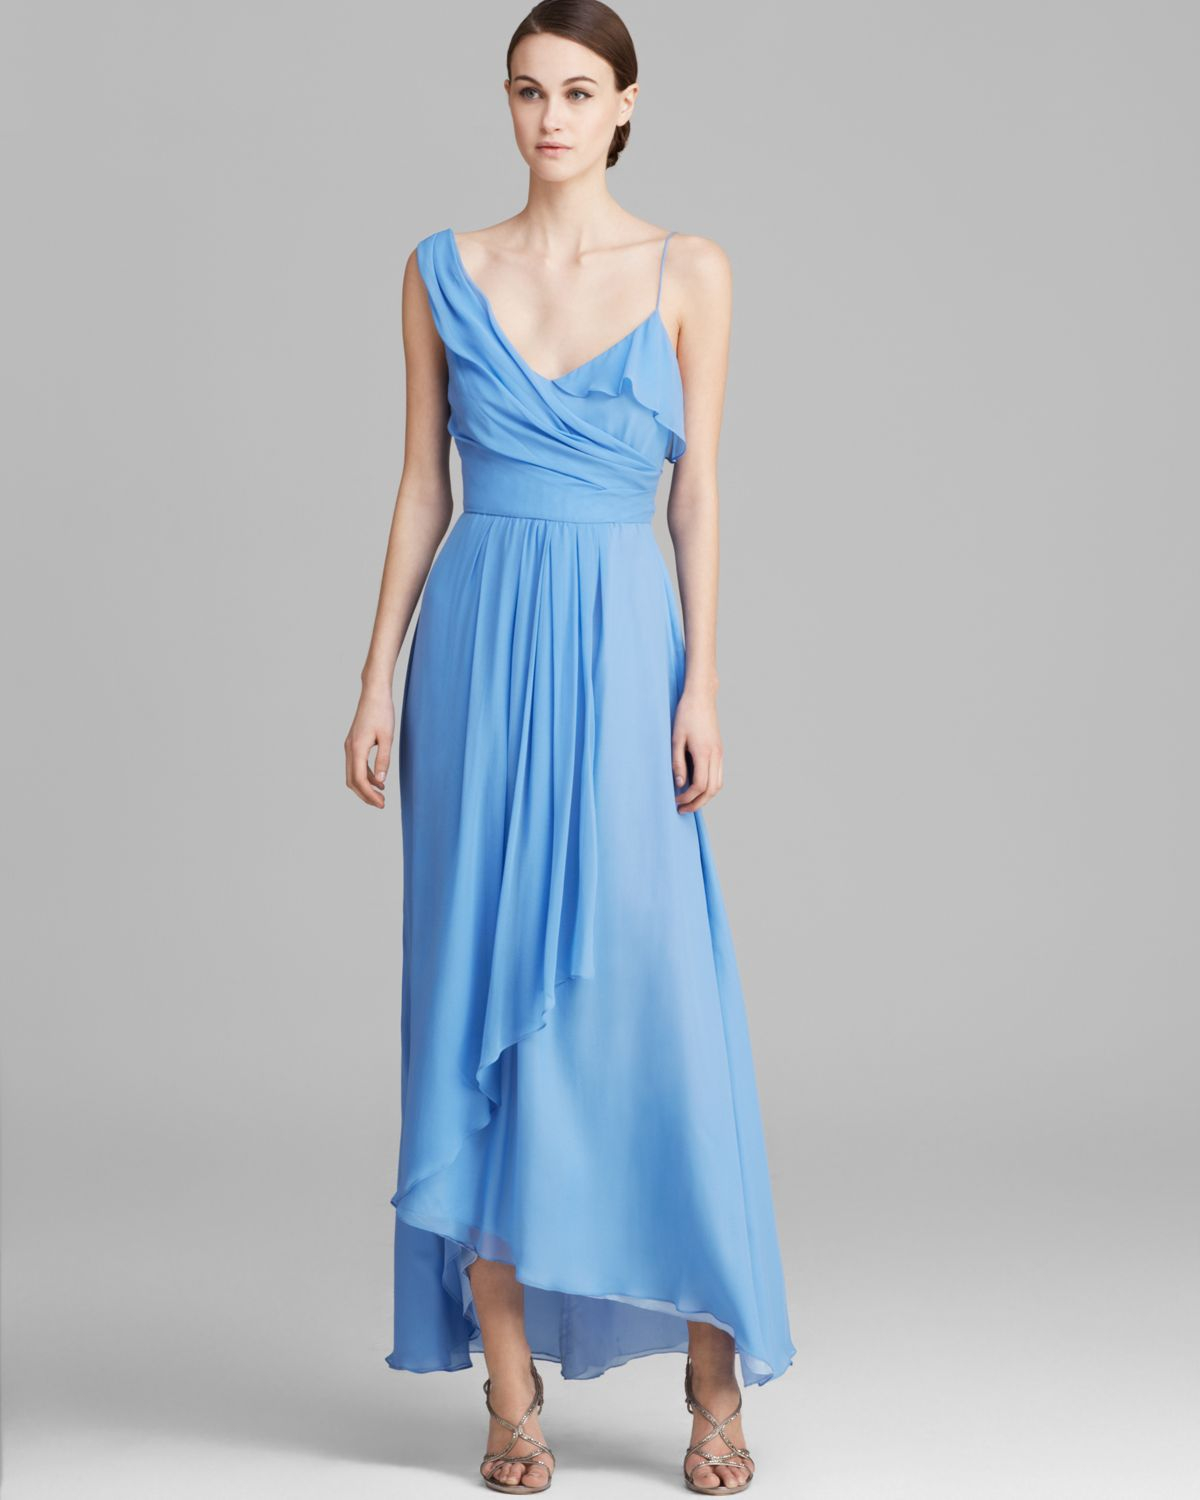 Lyst - Jill Jill Stuart Gown - One Shoulder Draped High/Low Chiffon ...